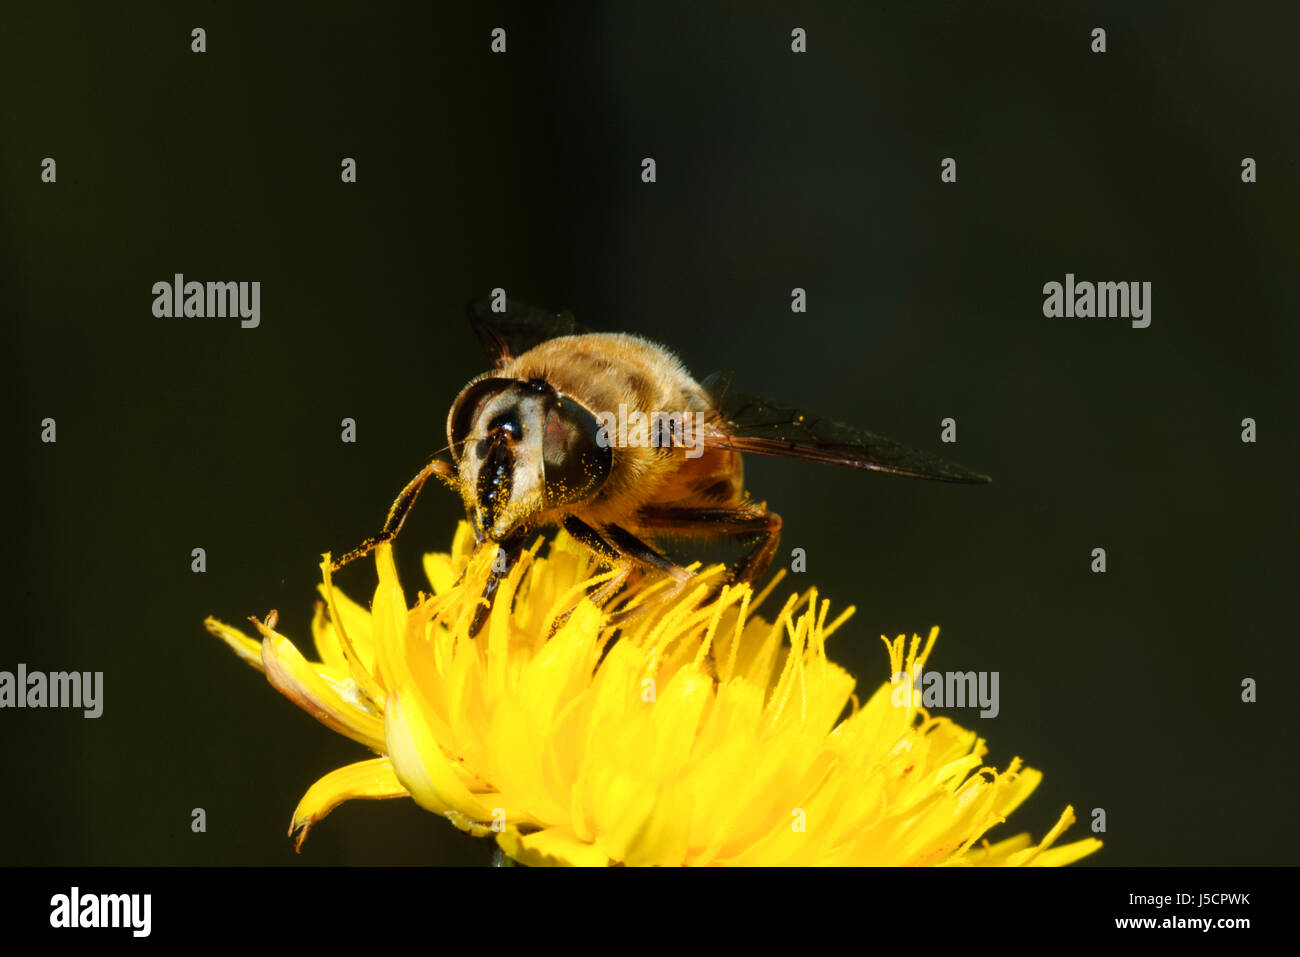 Drone Fly (Eristalis tenax), a bee mimic, is seen pollinating nectar of a yellow flowerhead, New South Wales, NSW, - Stock Image